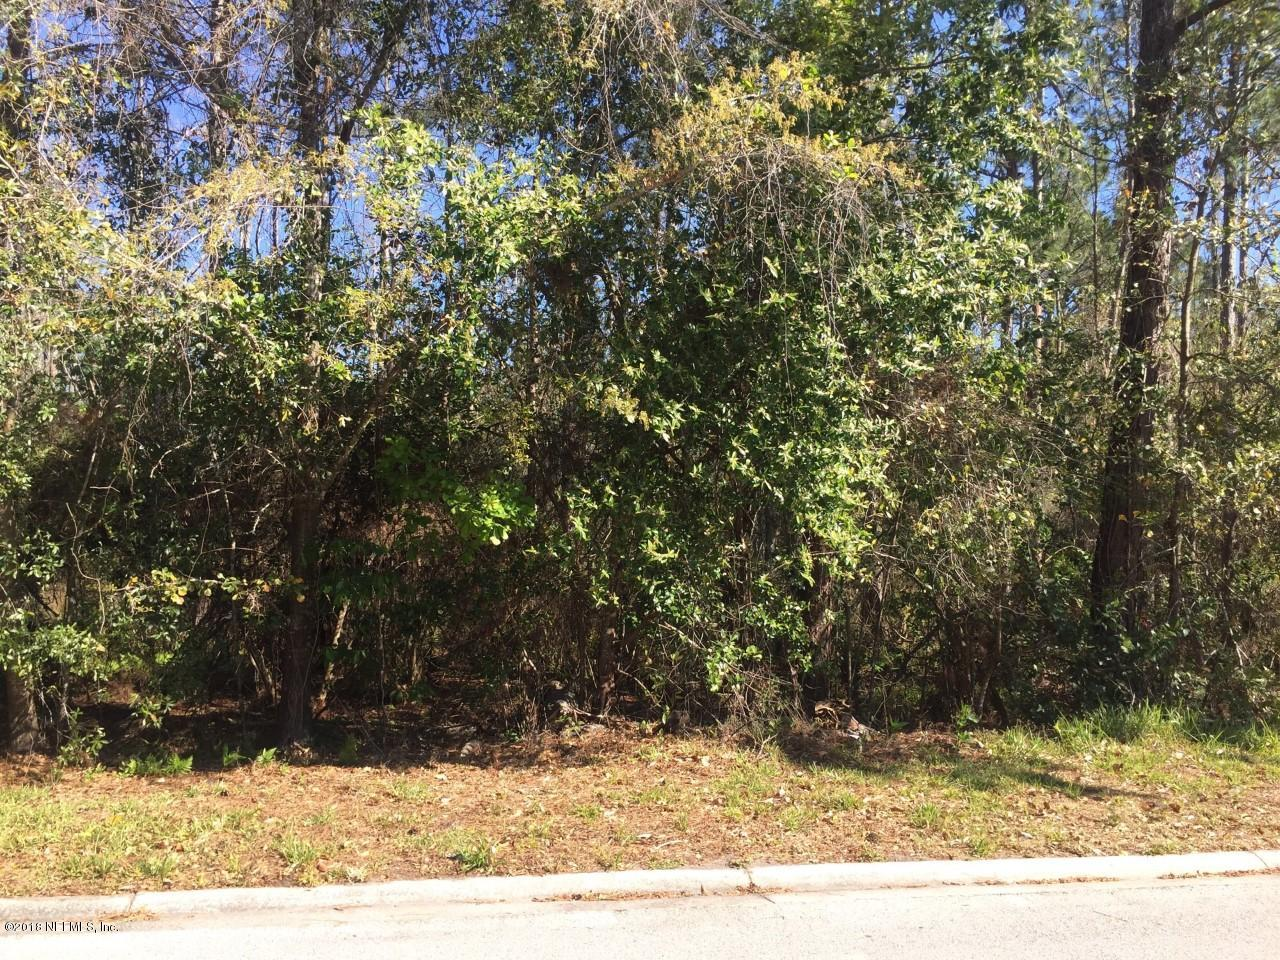 0 BANNONS WALK, JACKSONVILLE, FLORIDA 32258, ,Vacant land,For sale,BANNONS WALK,923566